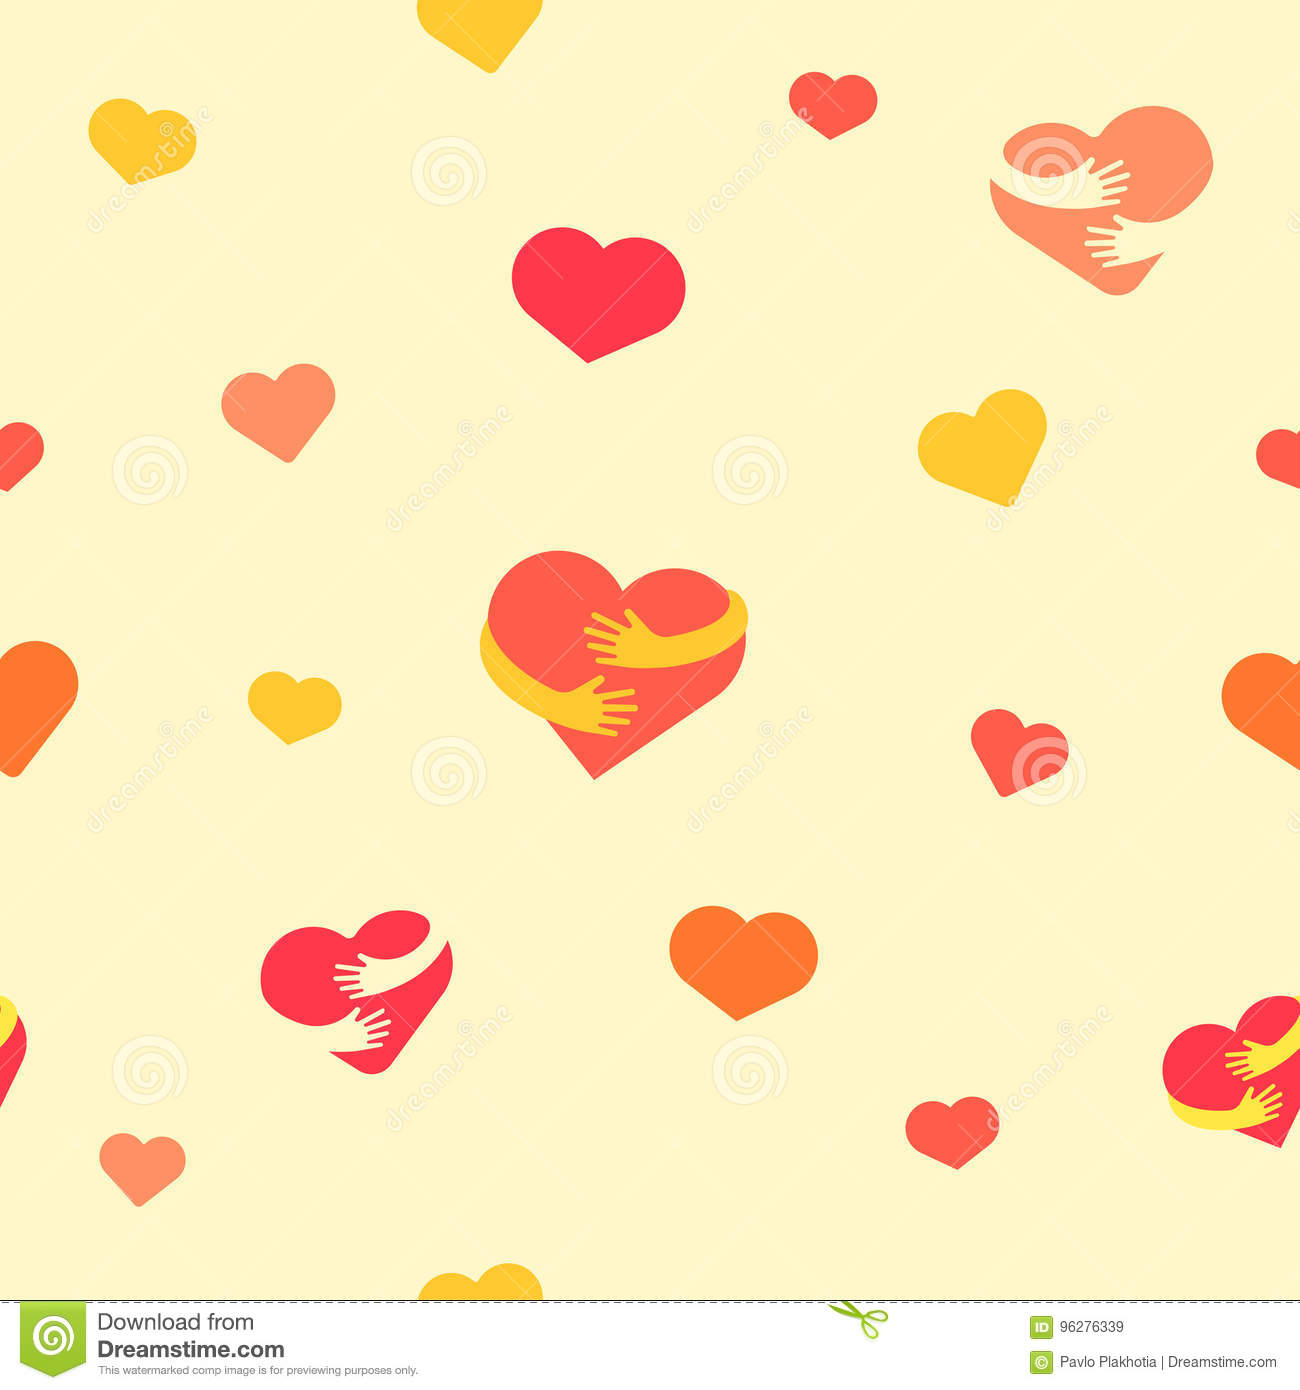 Hearts seamless pattern. Baby background with colorful hearts and hands. Vector illustration. Flat background for design